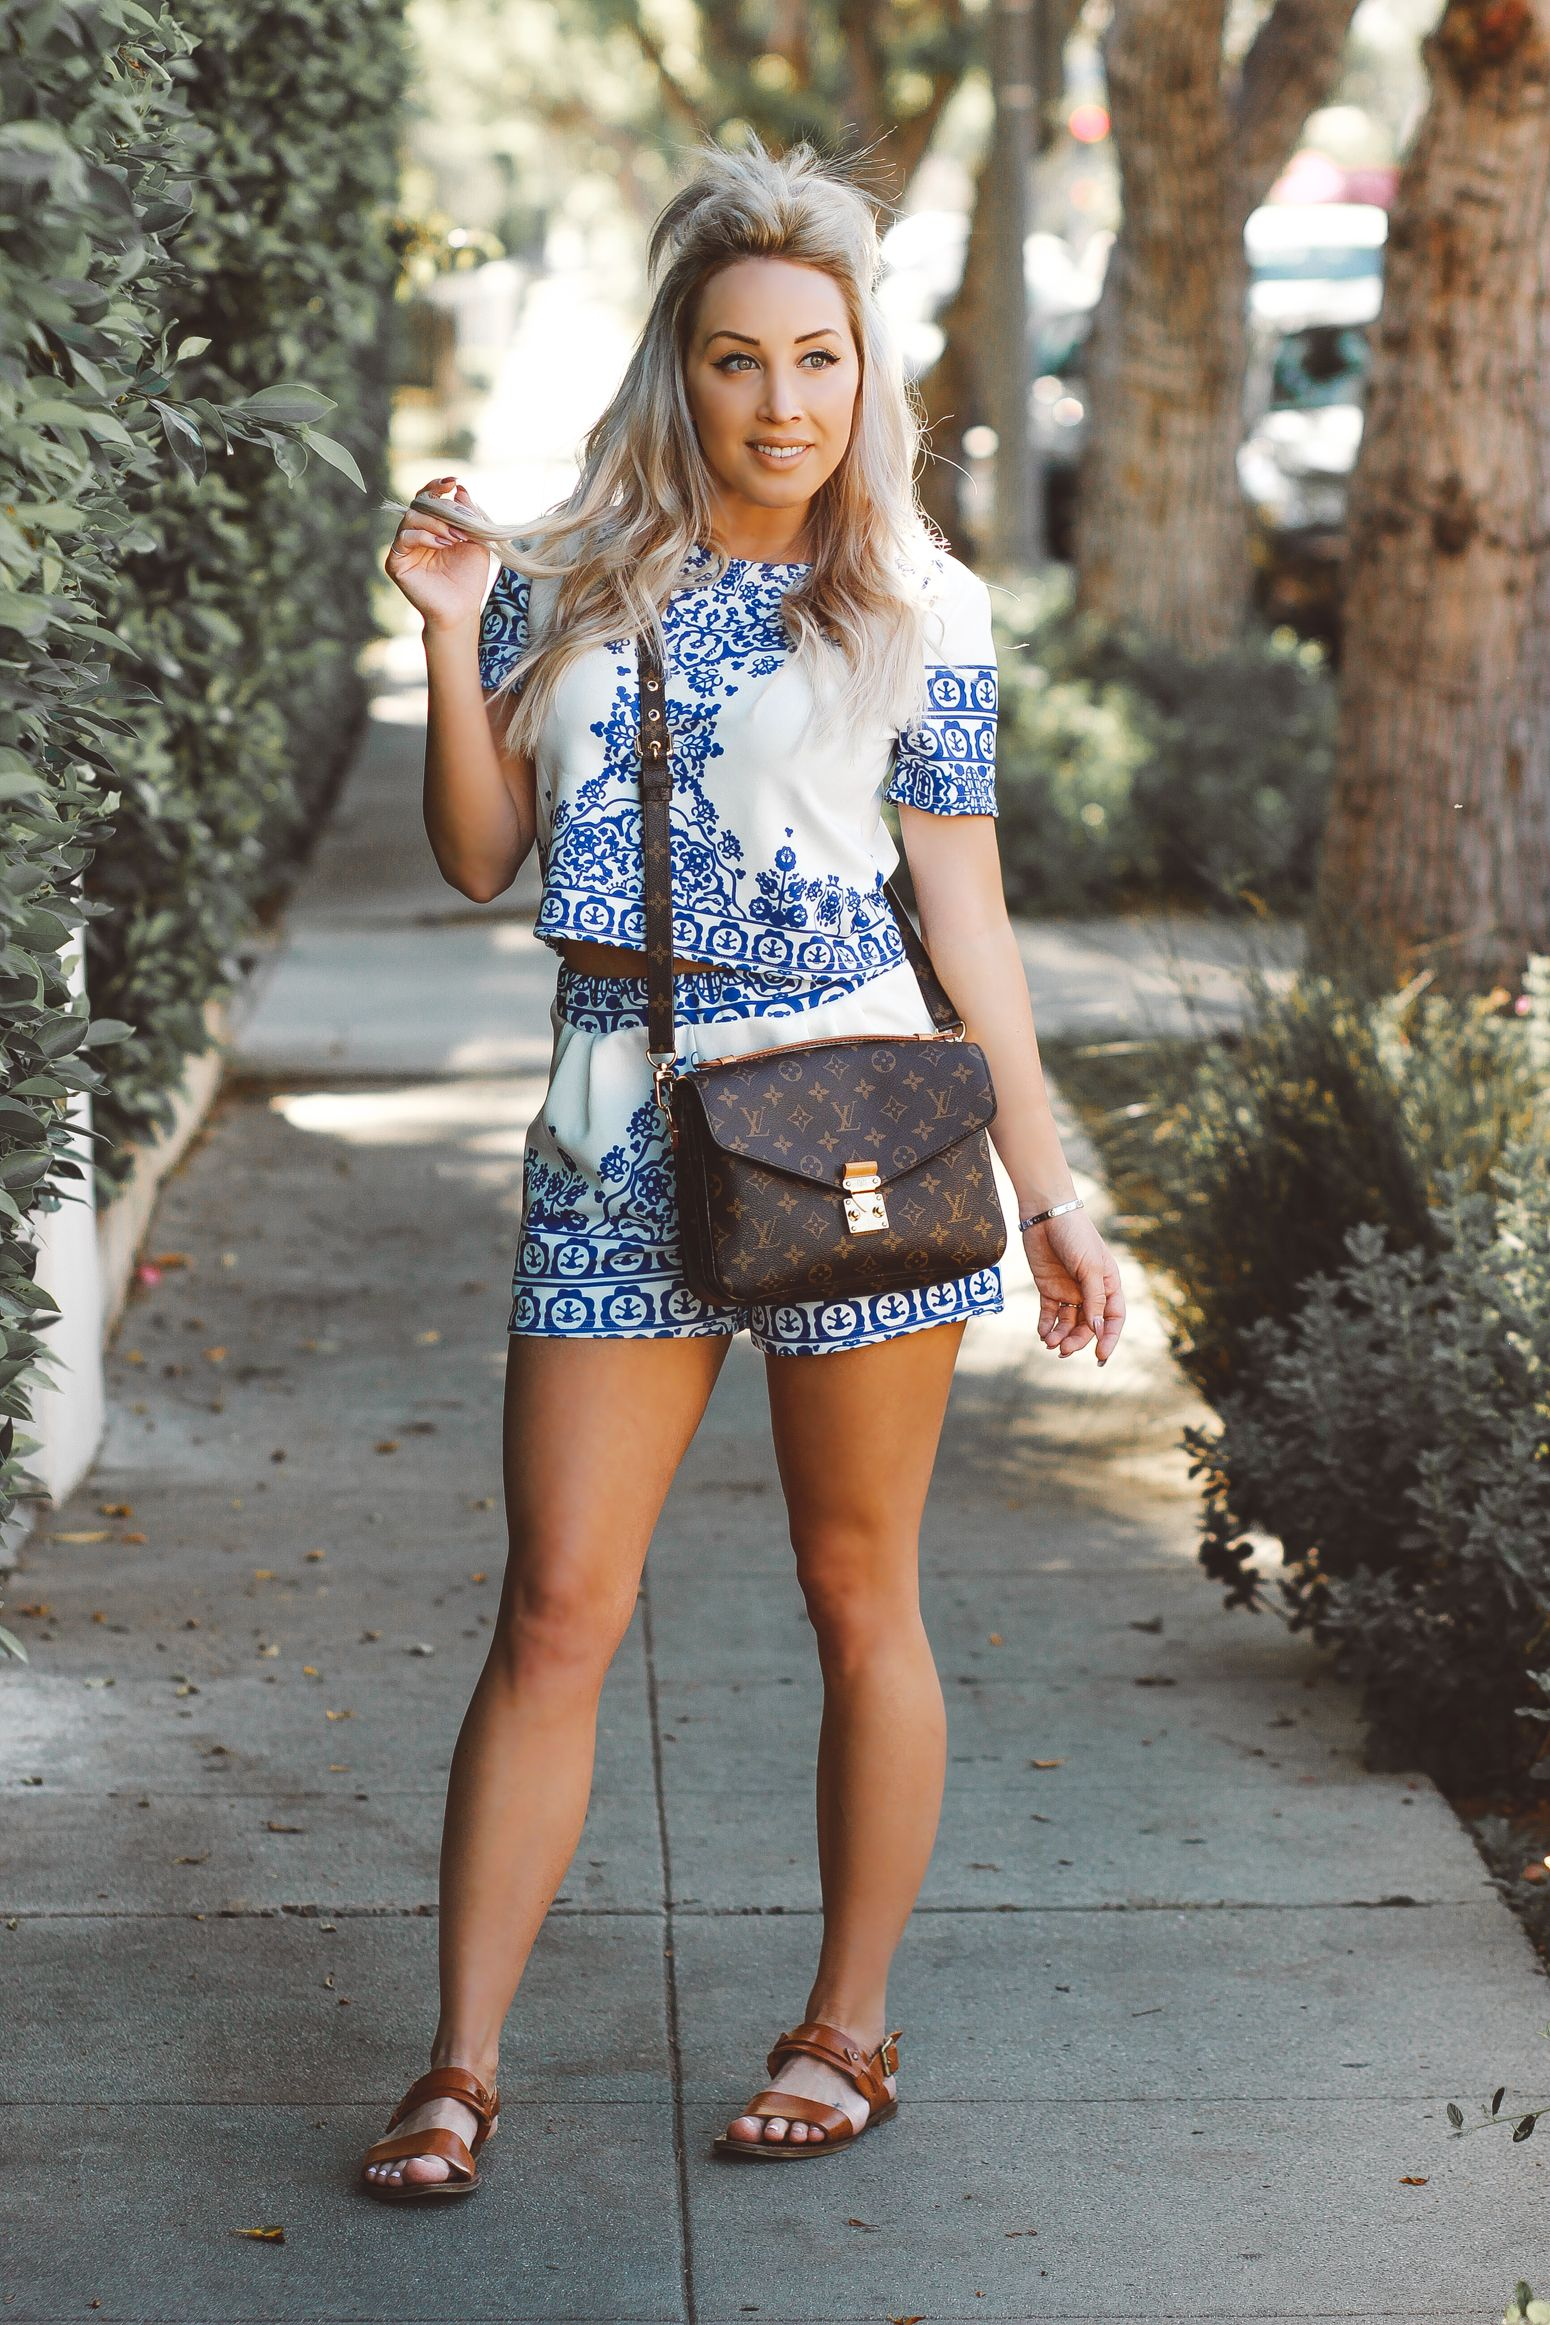 f945350d7302 Blondie in the City | Porcelain Print Two-Piece Outfit | Louis Vuitton  Pochette Metis